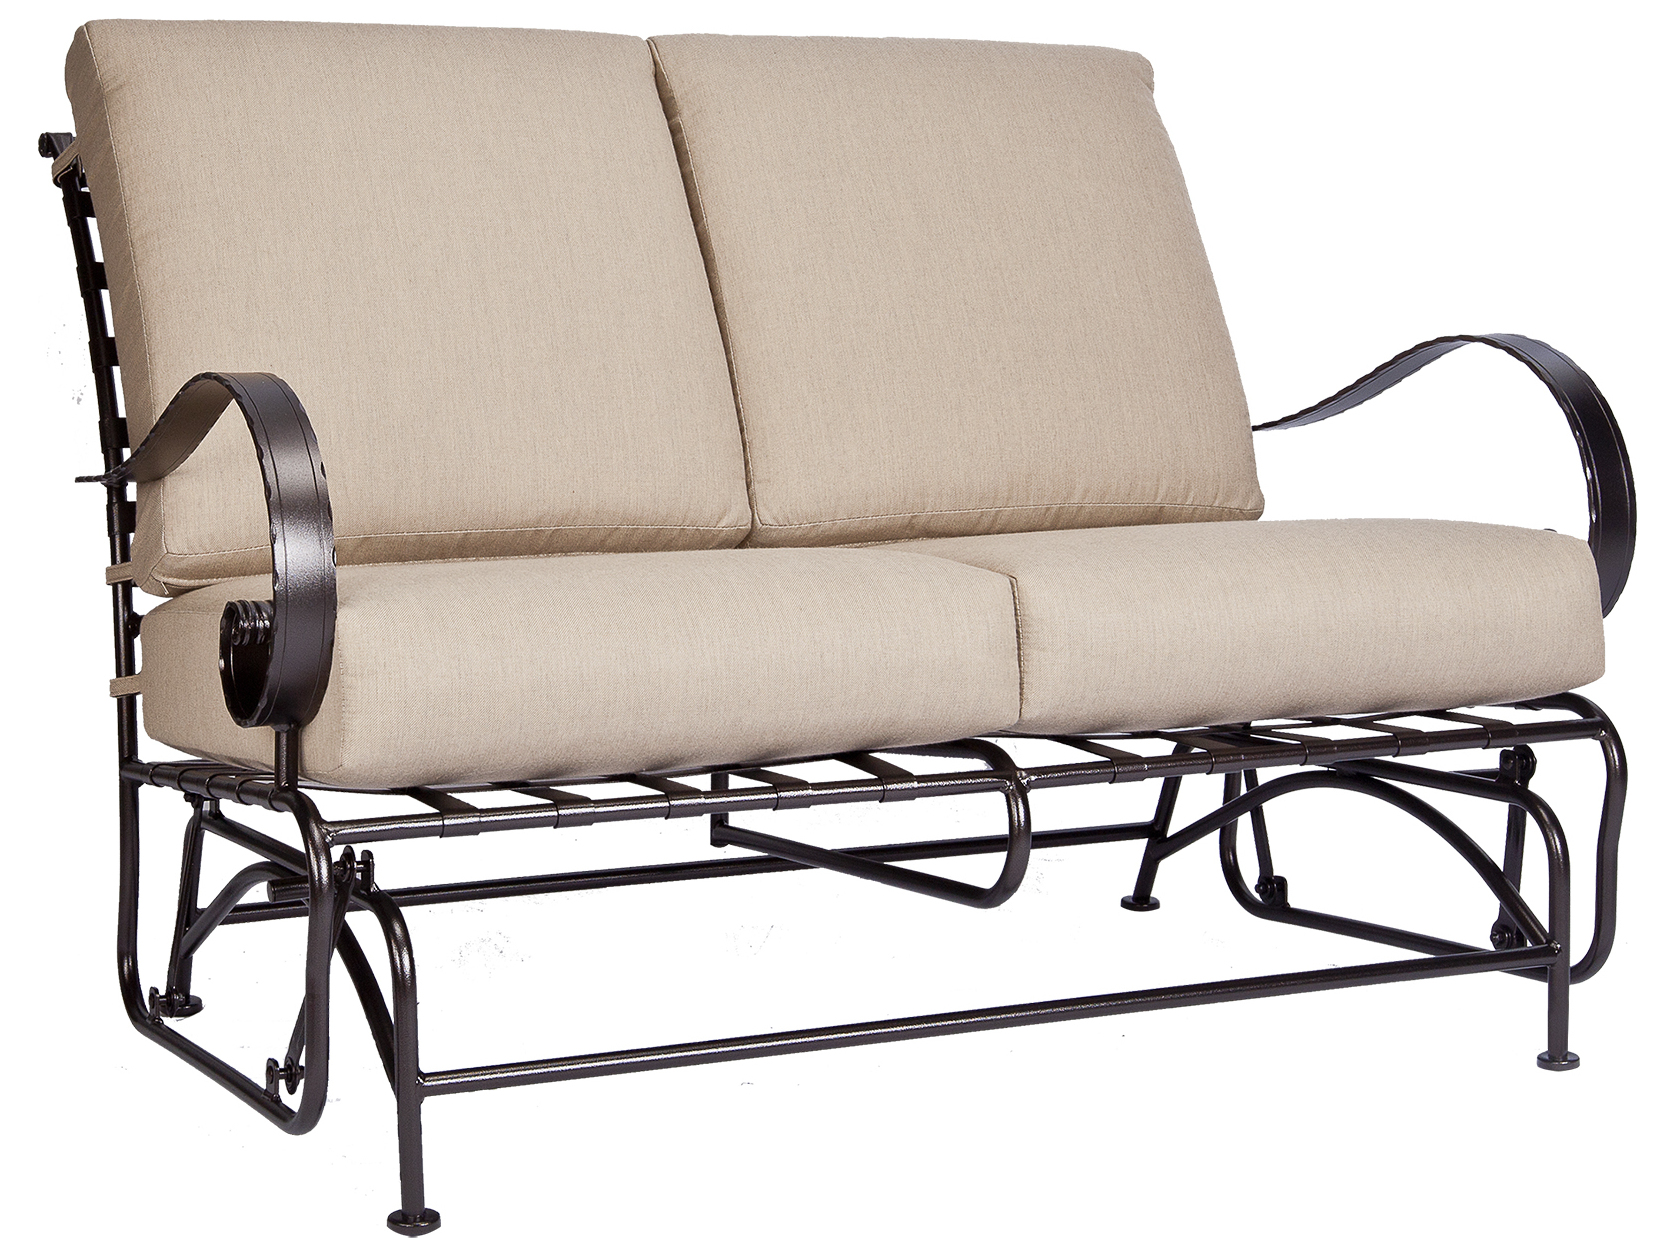 wide glider chair swing models ow lee classico arms wrought iron loveseat